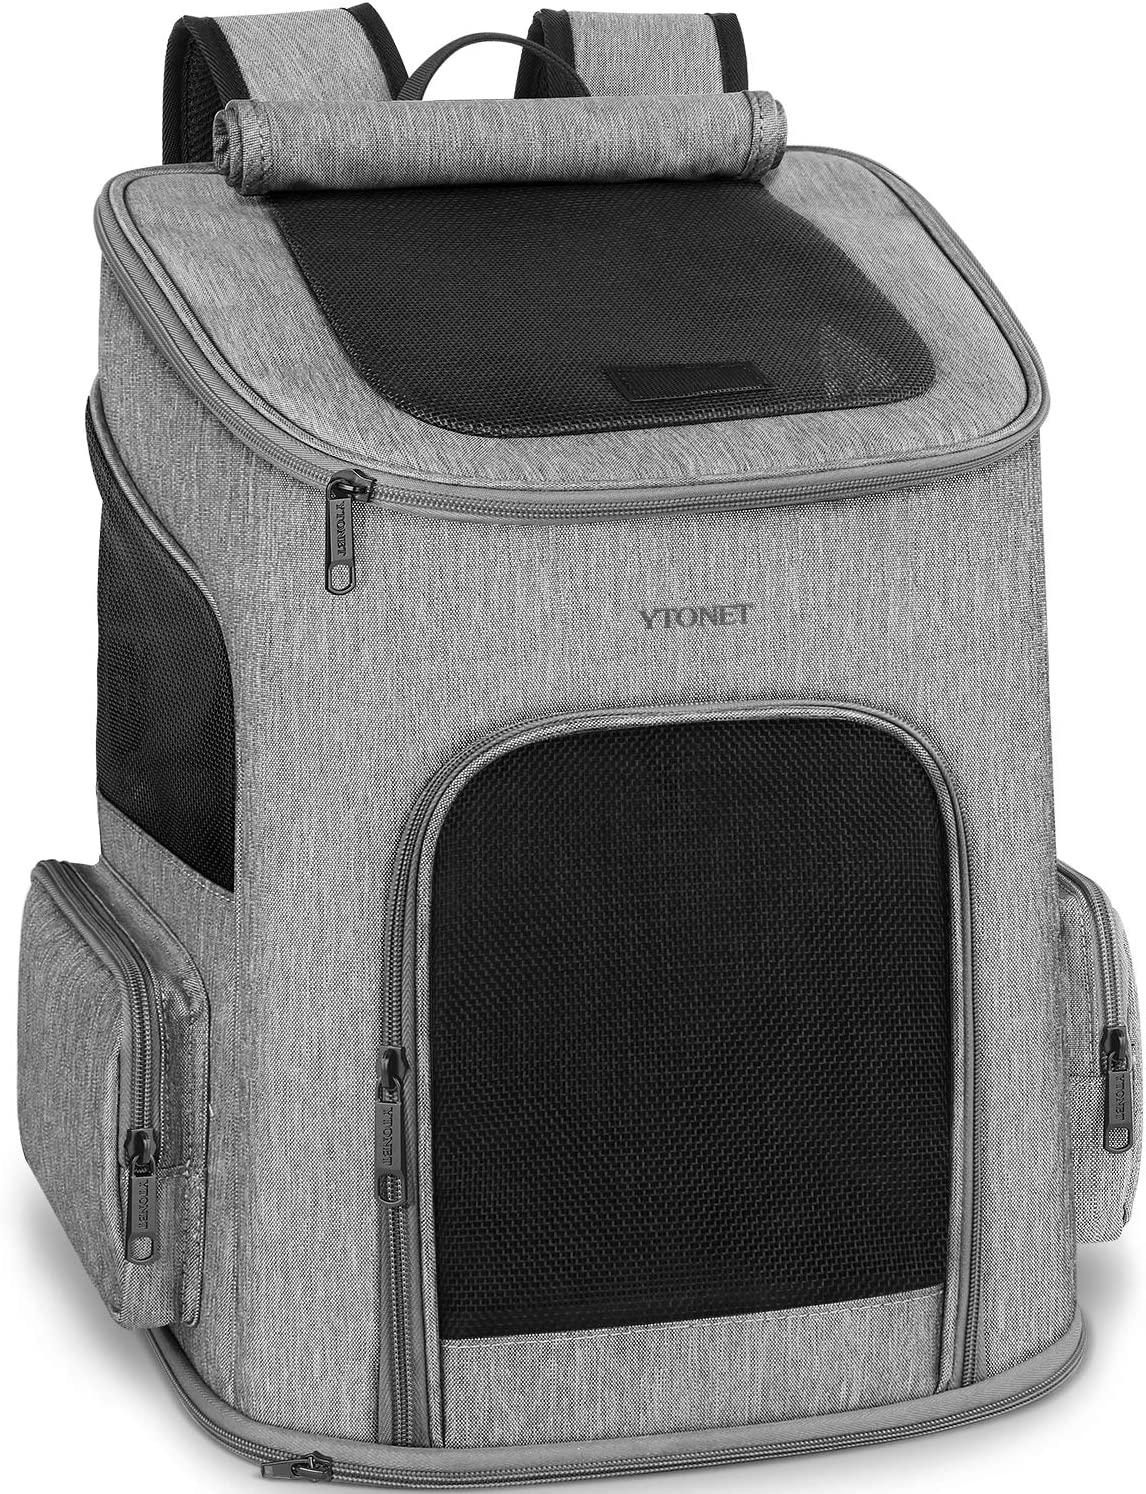 Ytonet dog Carrier Backpack